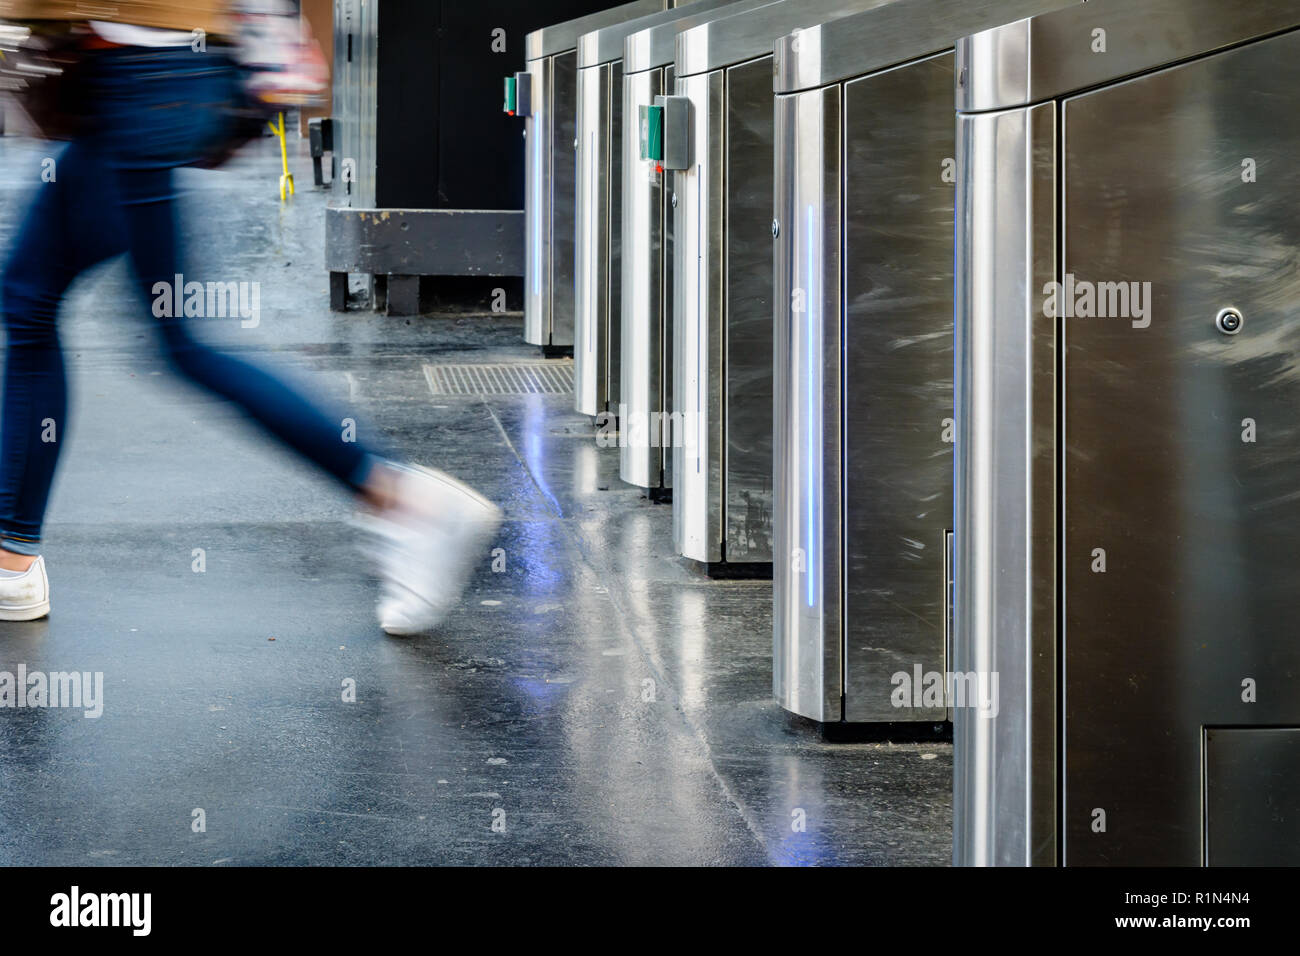 Side view of a young woman passing through stainless steel ticket gates in a public transportation station in Paris, France, with motion blur. - Stock Image